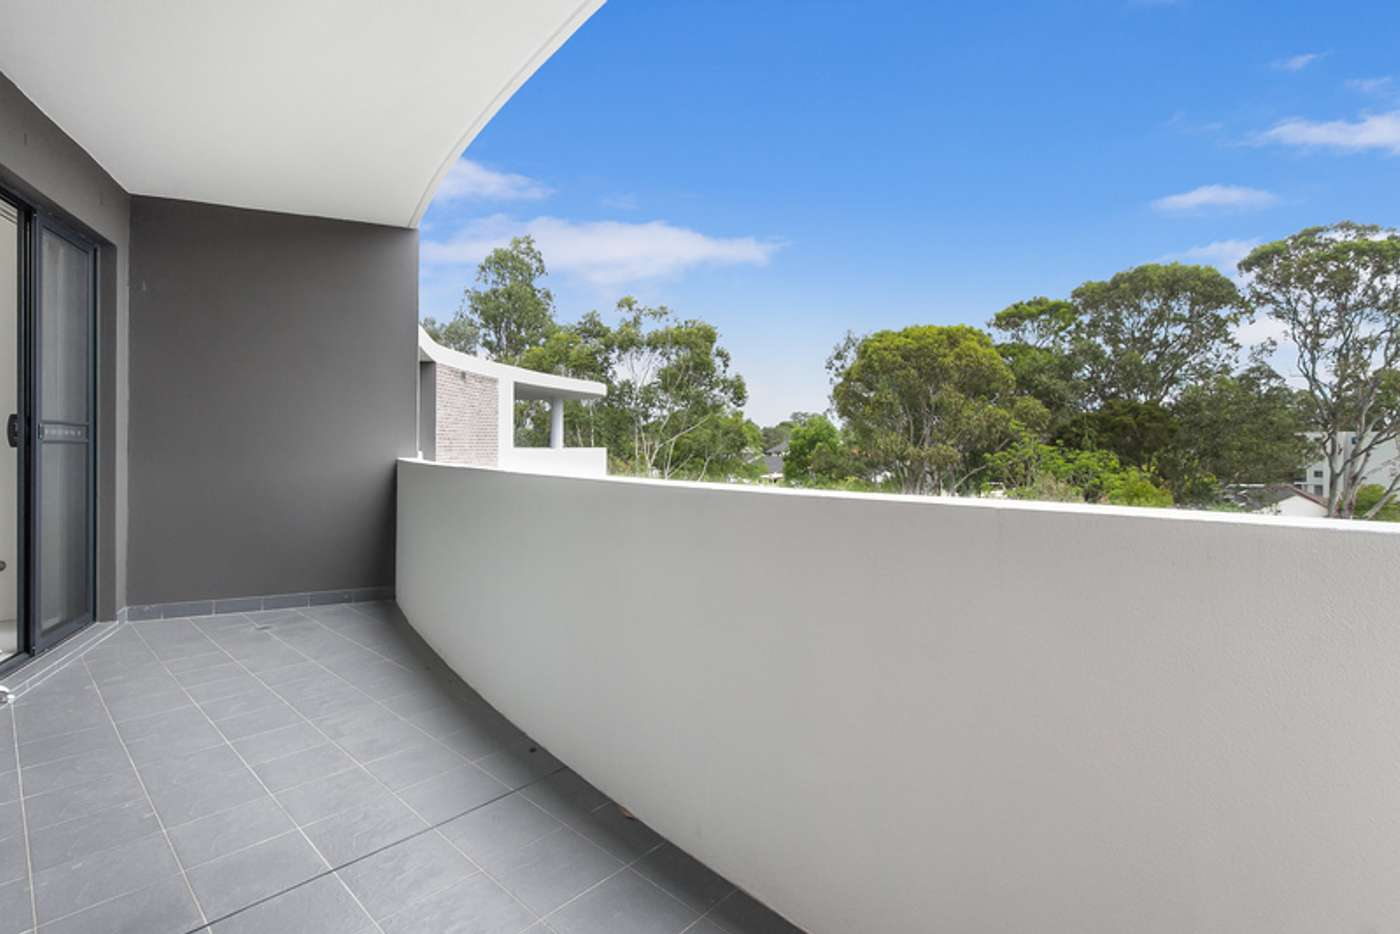 Seventh view of Homely unit listing, 15/8-12 Linden Street, Toongabbie NSW 2146